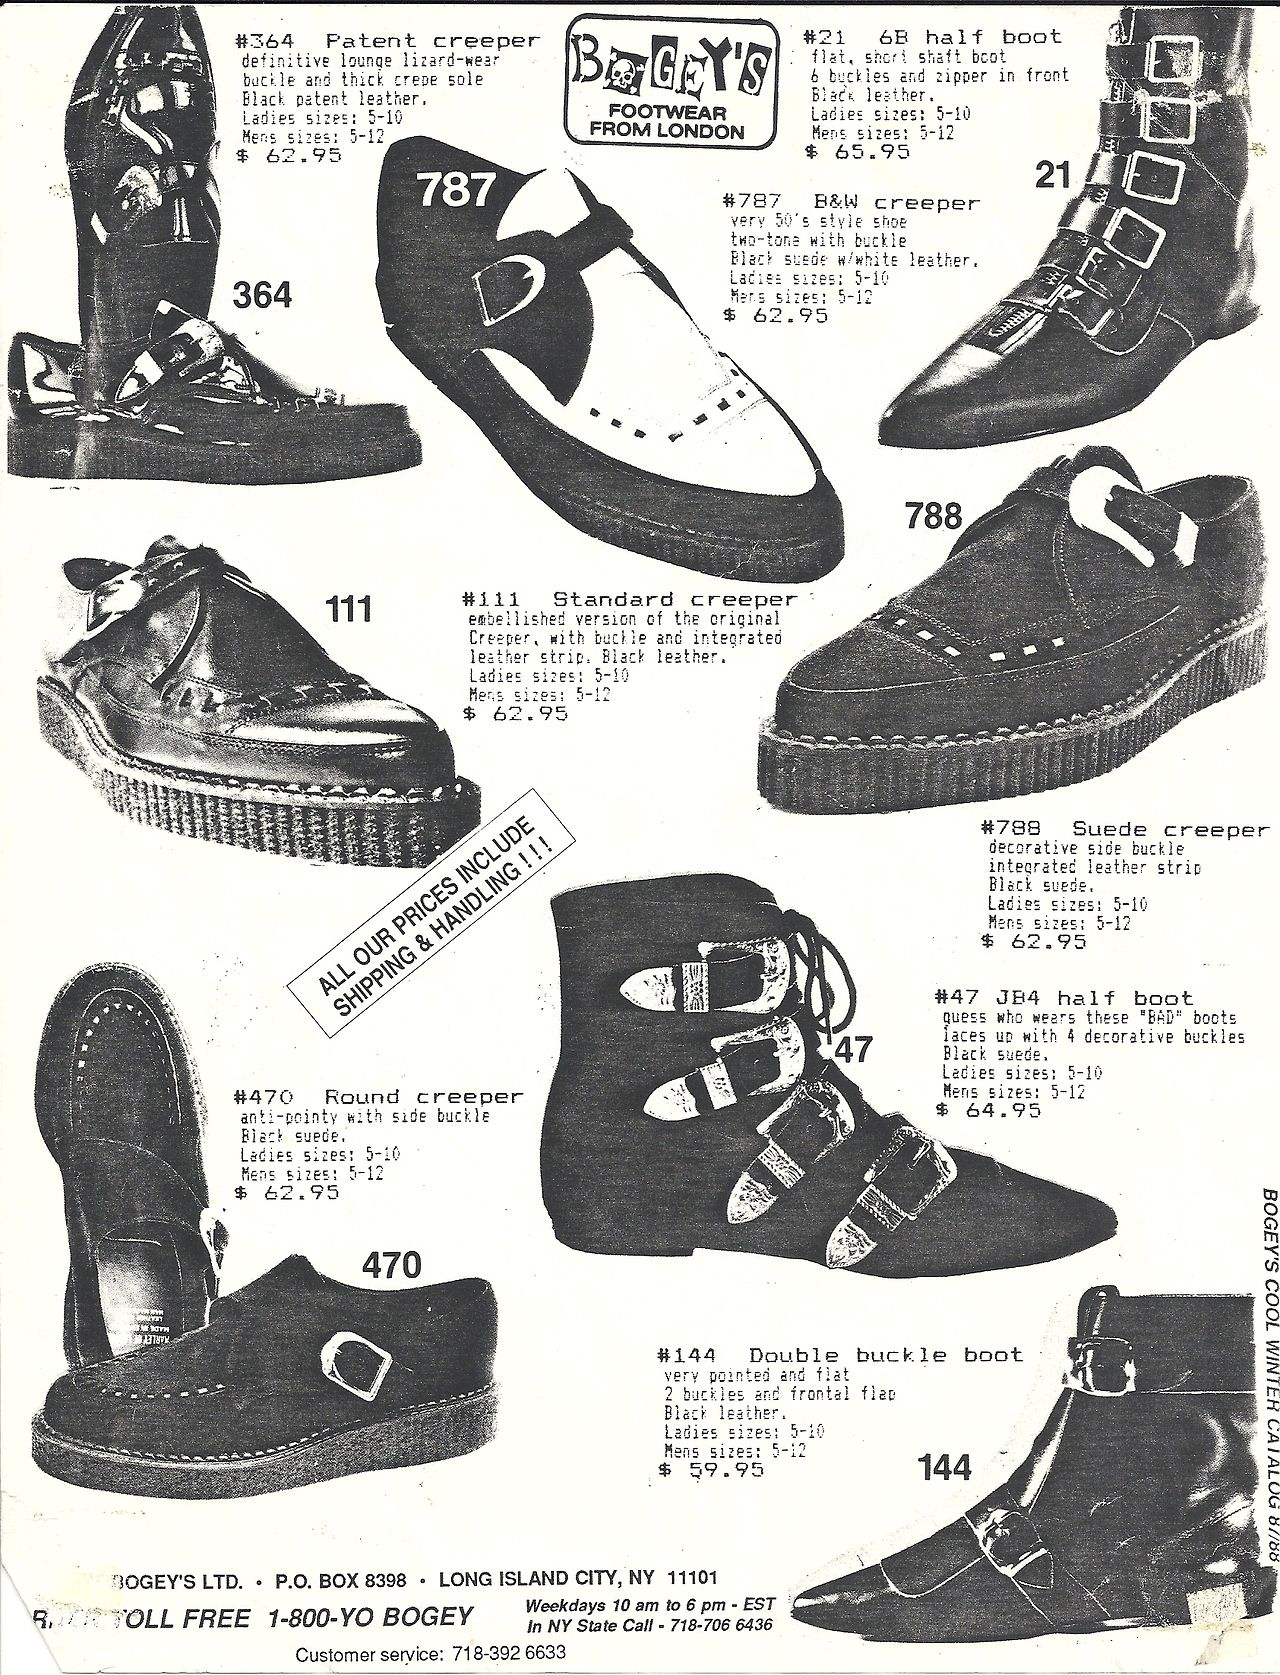 80s shoes - Creepers, winklepickers. I still have some of ...